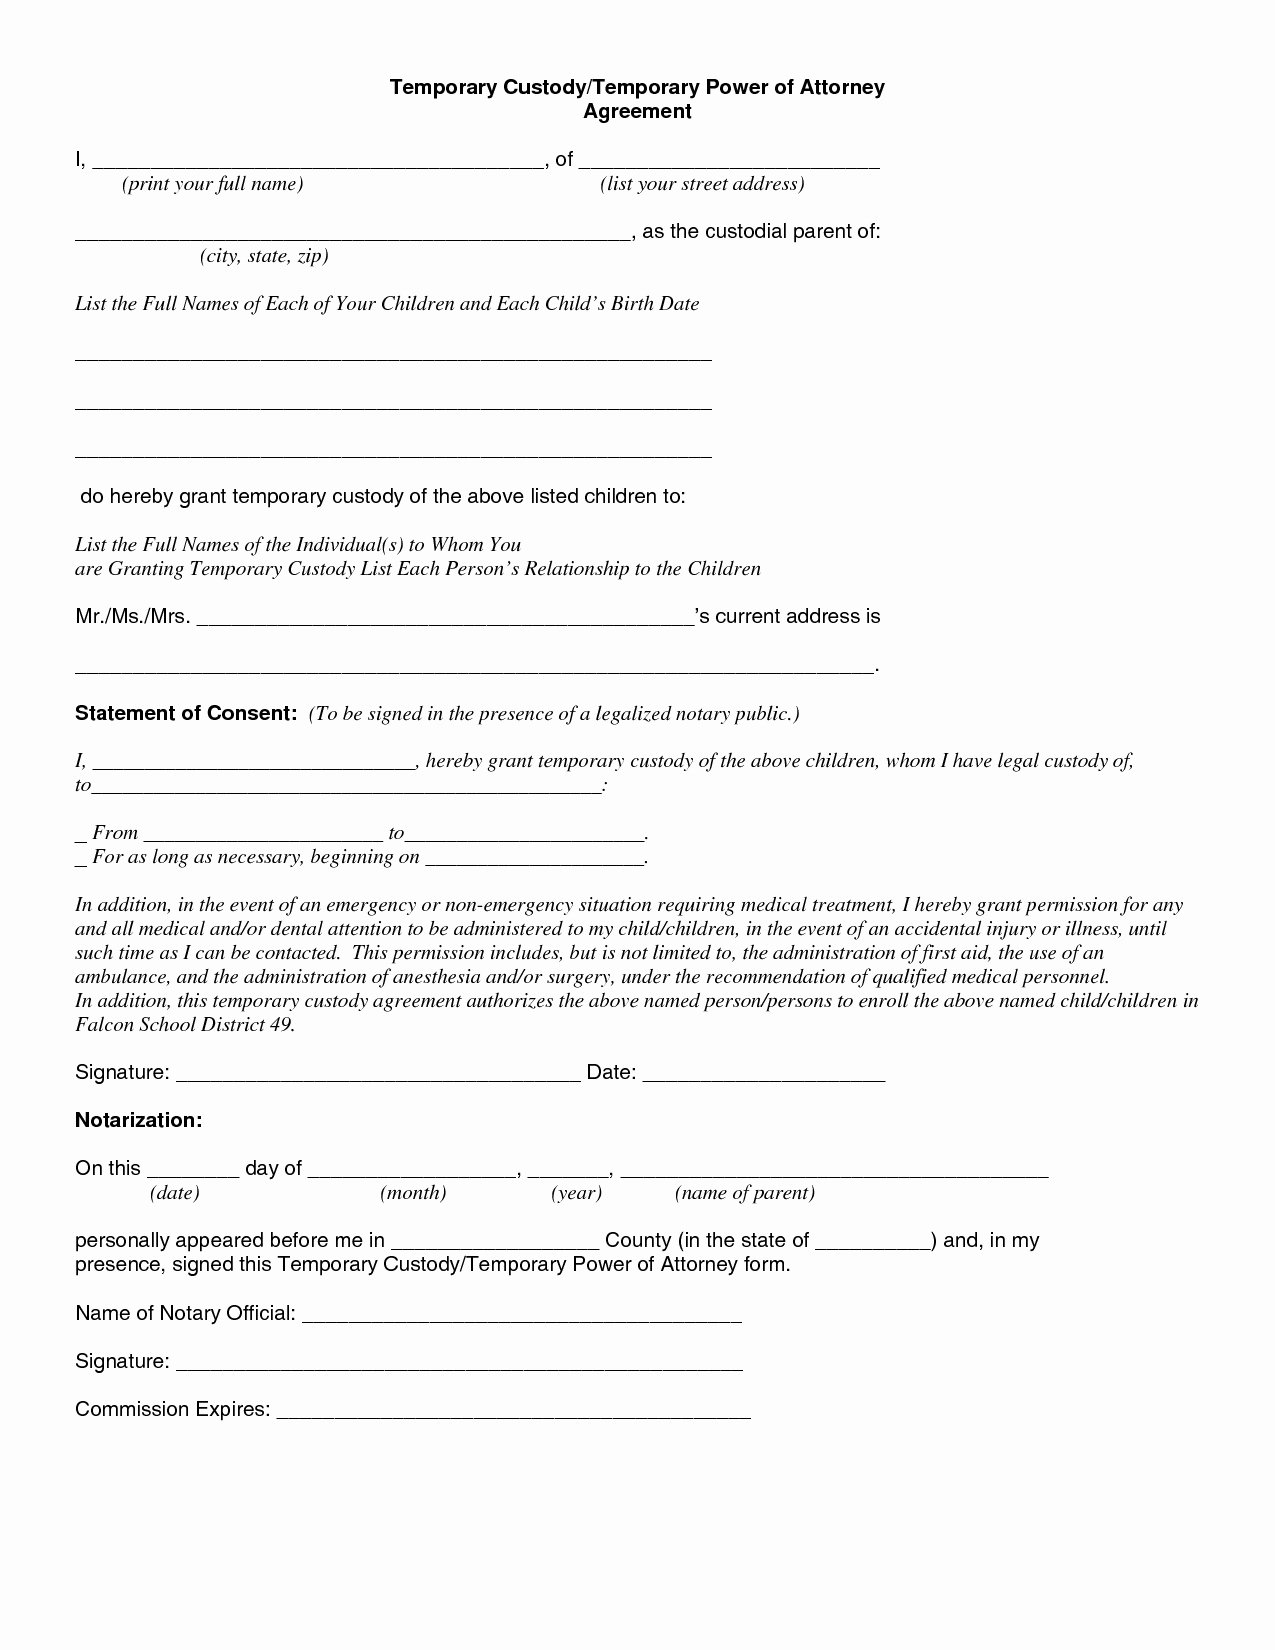 Free Temporary Guardianship form Template Unique Temporary Custody Letter Template Examples